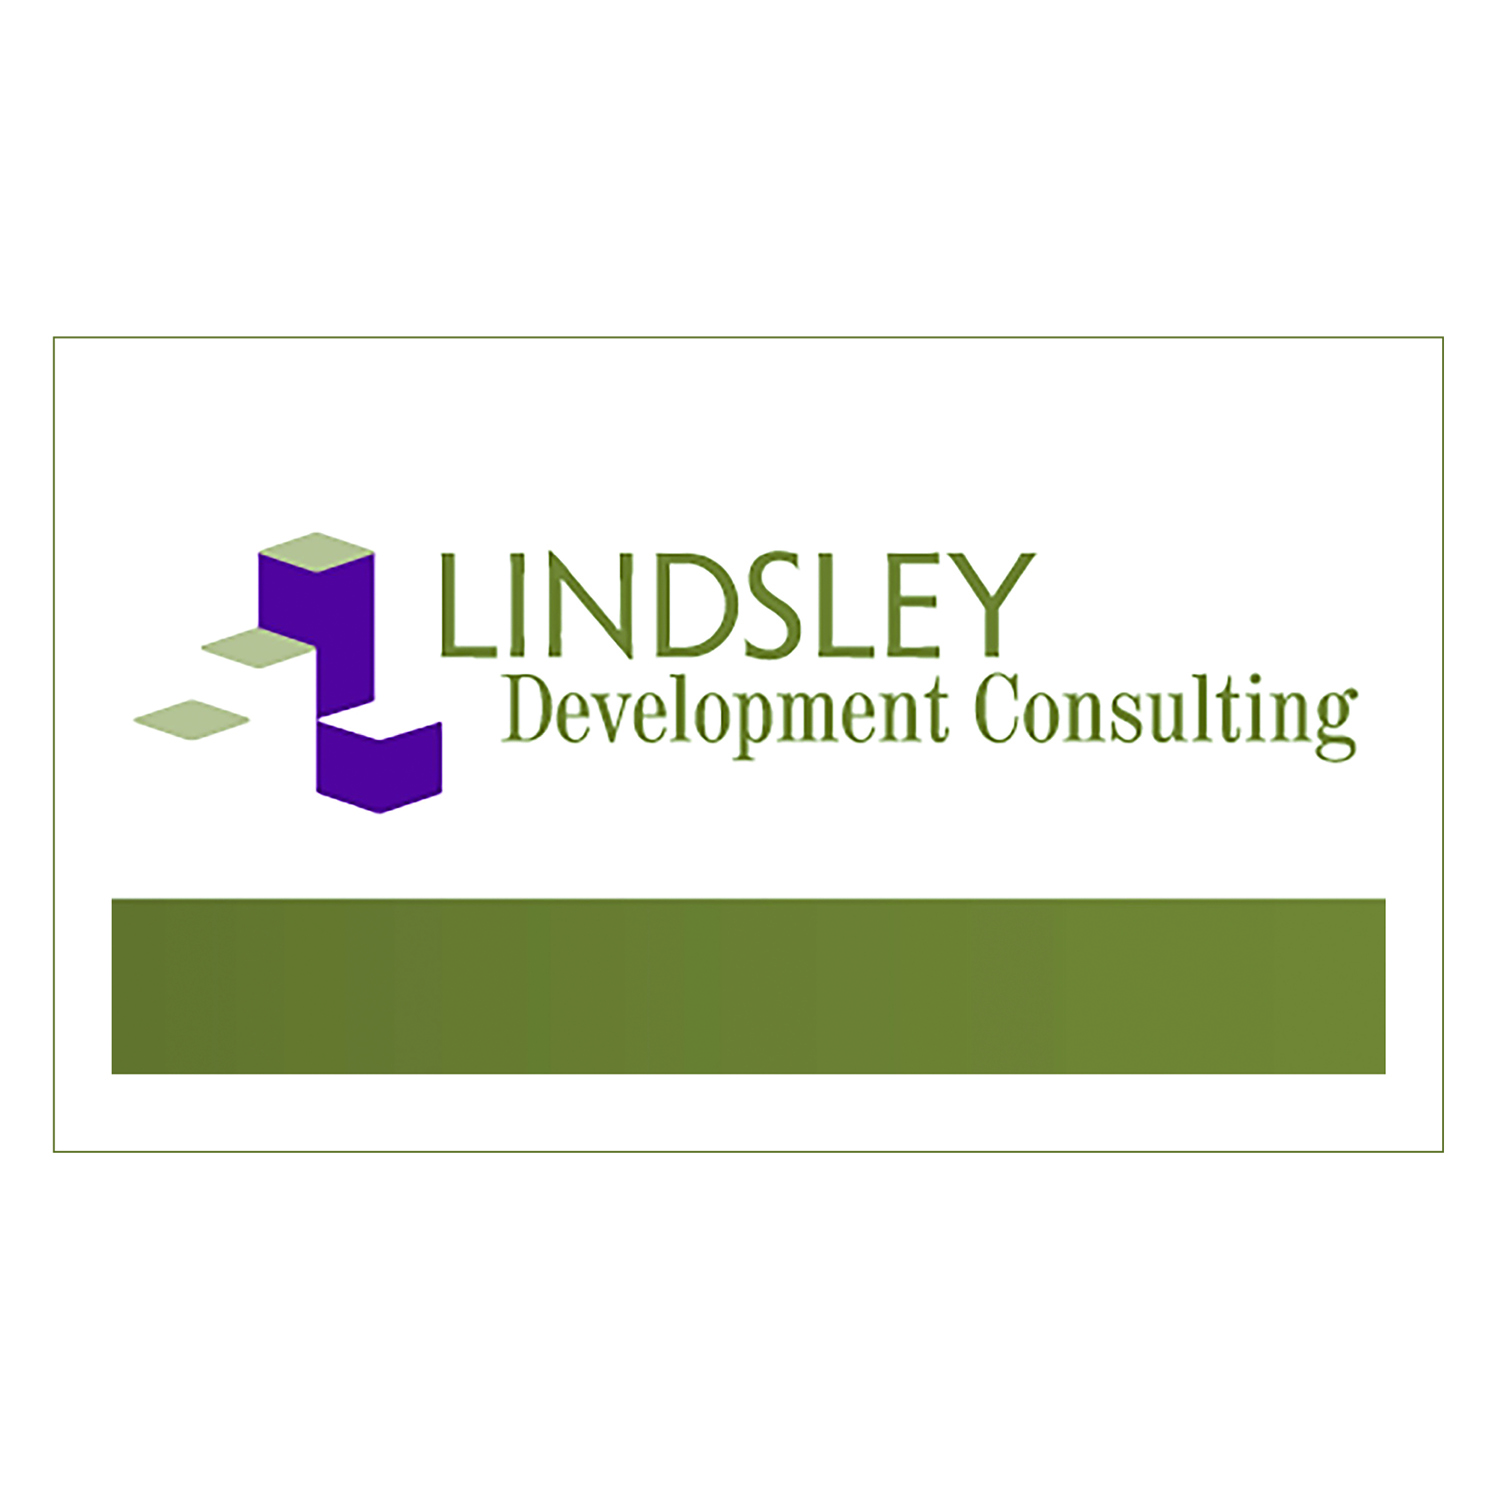 Lindsley Development Consulting CMYK 300 res right sized 3-page.jpg